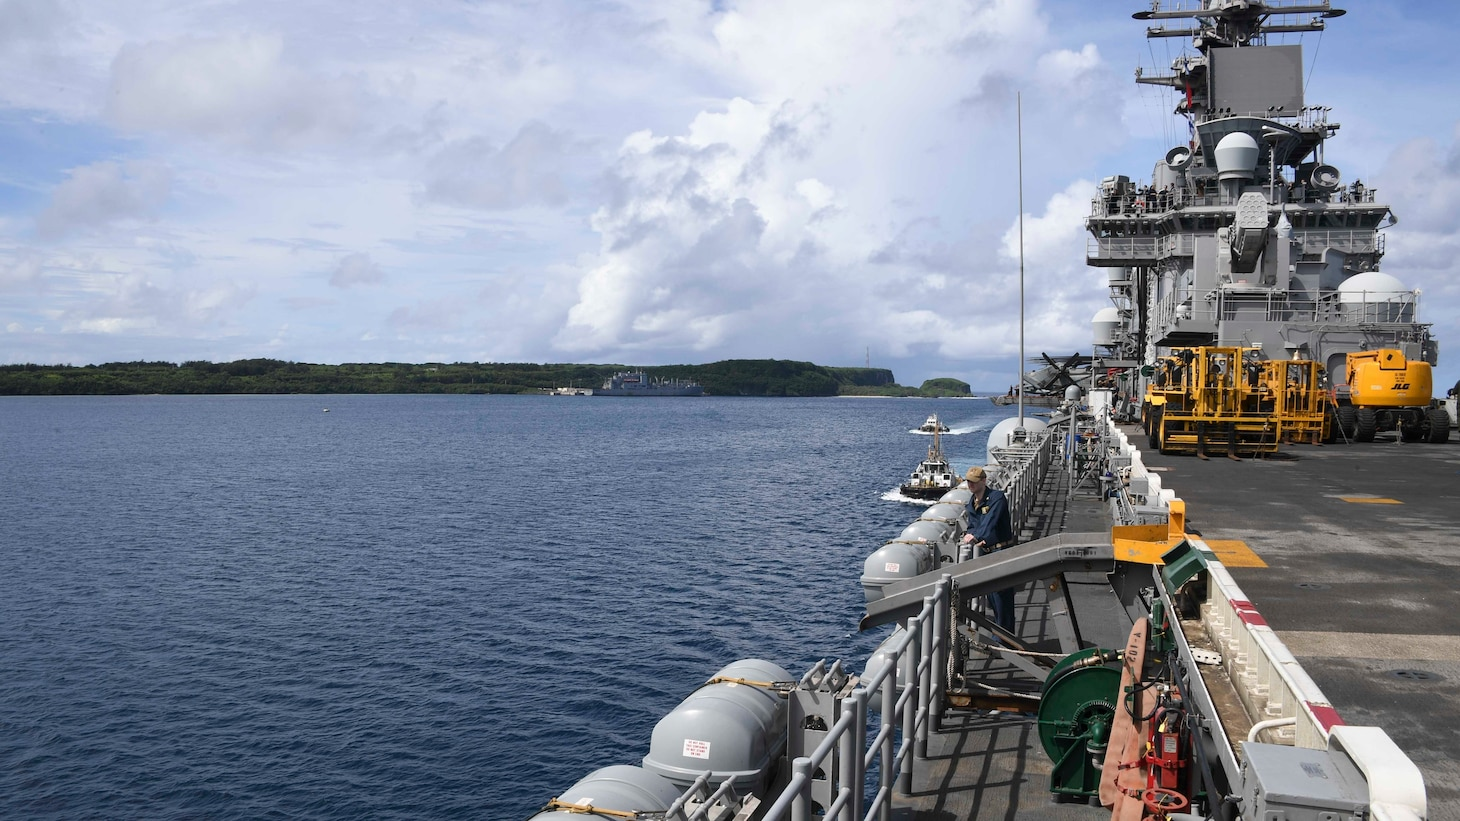 APRA HARBOR, GUAM (Oct. 30 2019) The amphibious assault ship USS Boxer (LHD 4) transits Apra Harbor. The Boxer Amphibious Ready Group (ARG) and 11th Marine Expeditionary Unit (MEU) are deployed to the U.S. 7th Fleet area of operations to support regional stability, reassure partners and allies, and maintain a presence to respond to any crisis ranging from humanitarian assistance to contingency operations.